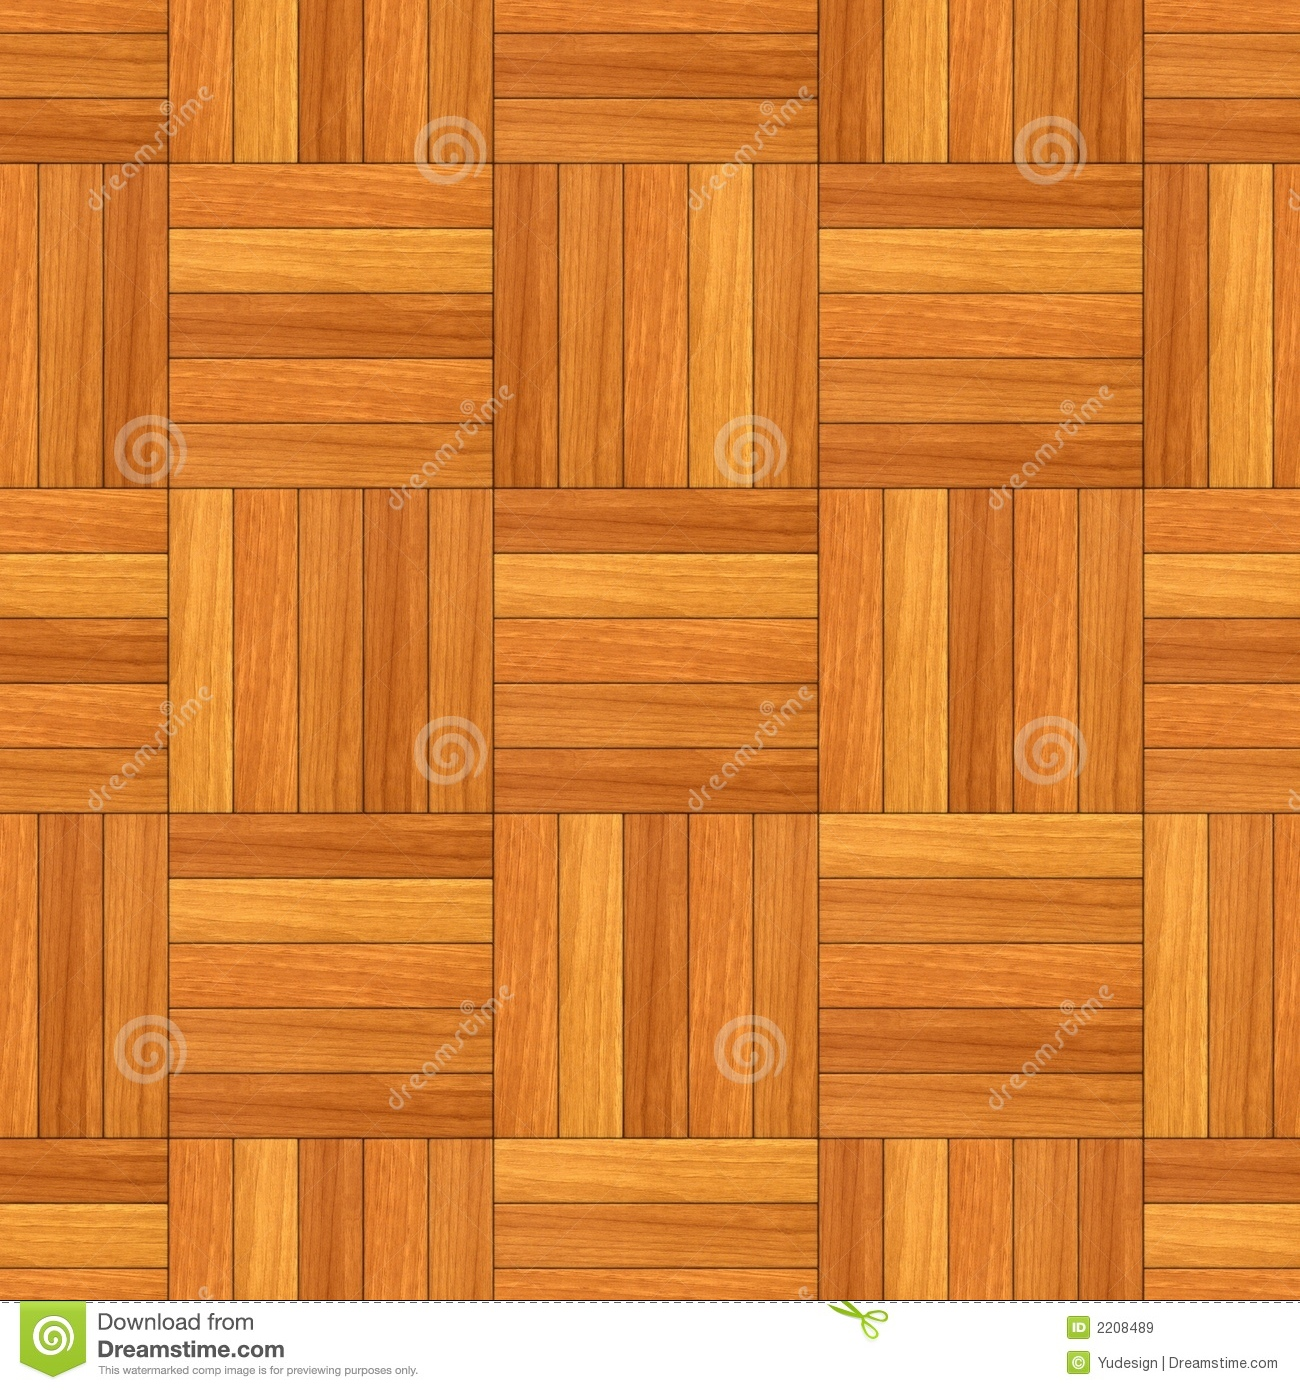 Basketball Floor Texture: Seamless Parquet Texture Royalty Free Stock Images